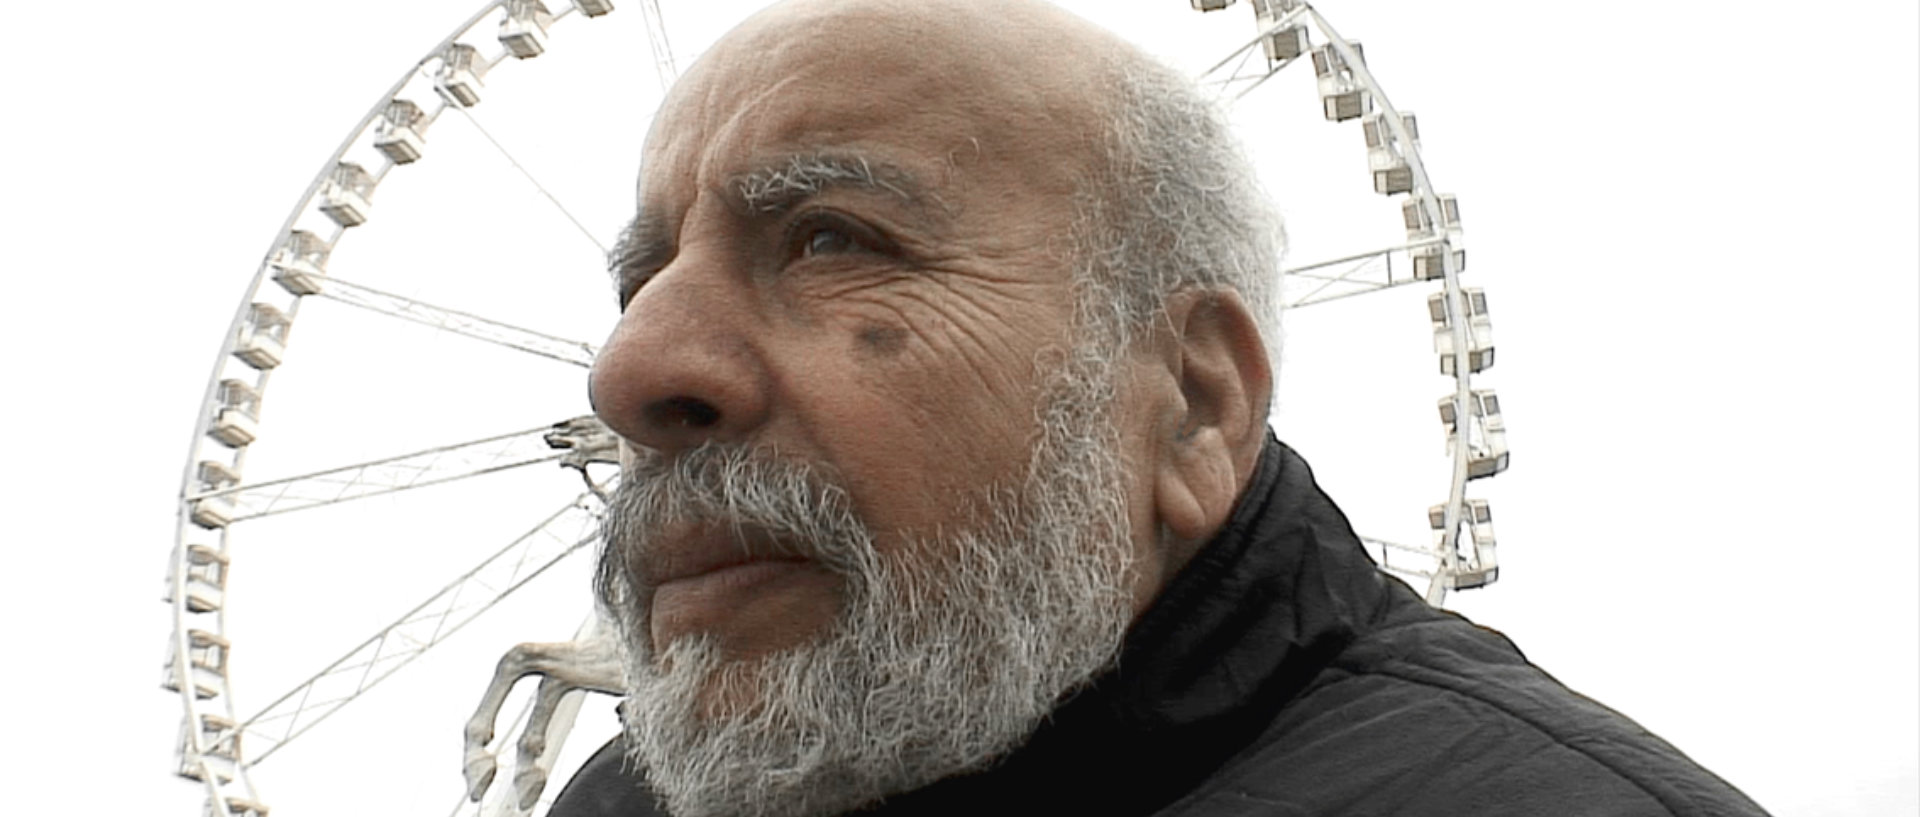 Mohamed Adar